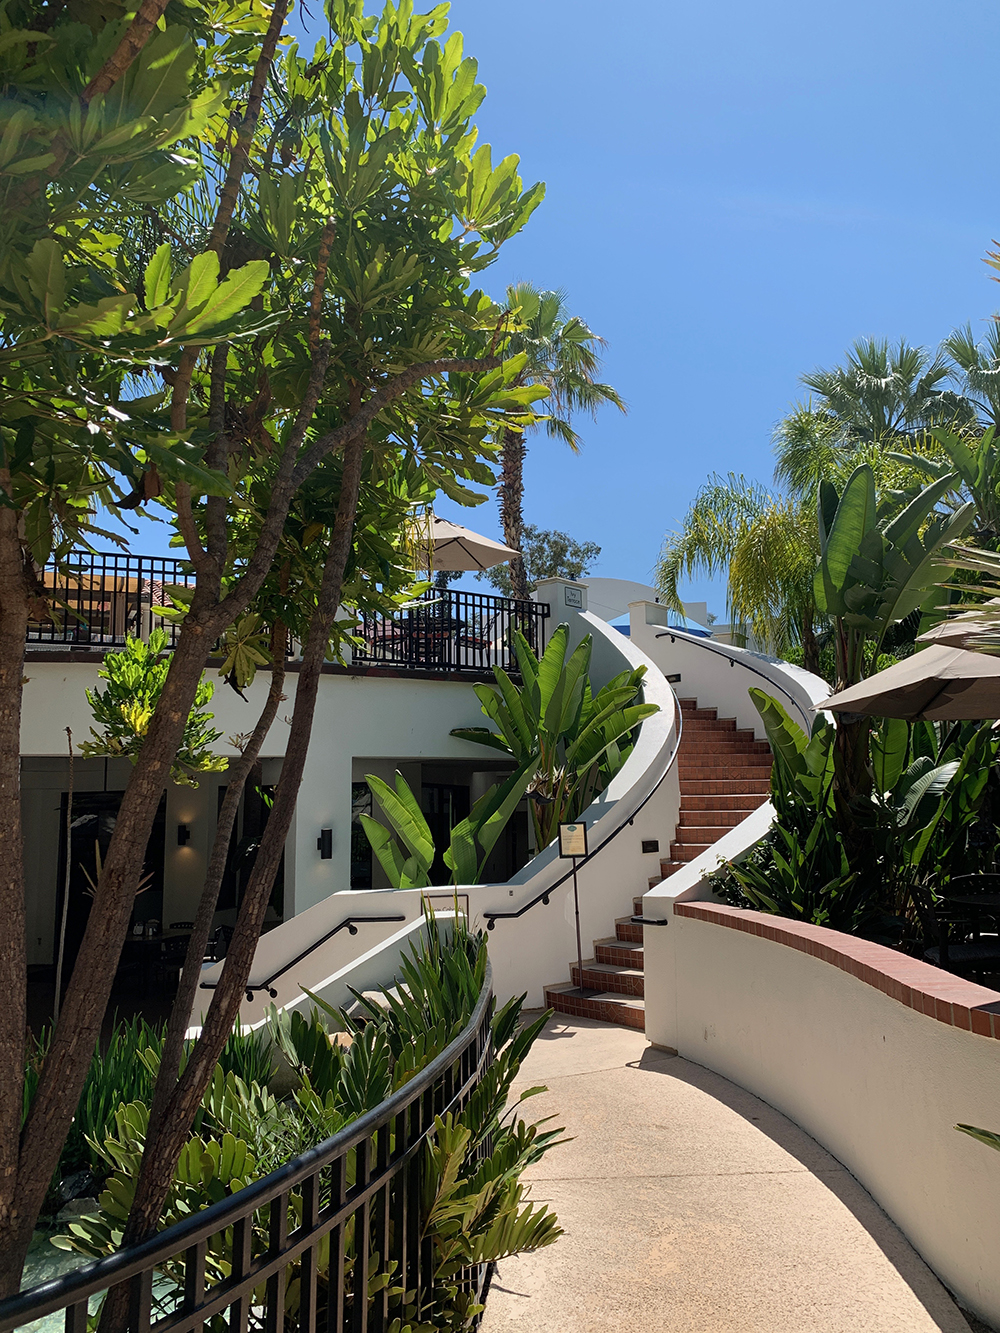 A day at Glen Ivy can include visits to all 19 pools, the saunas, fitness classes, and more.